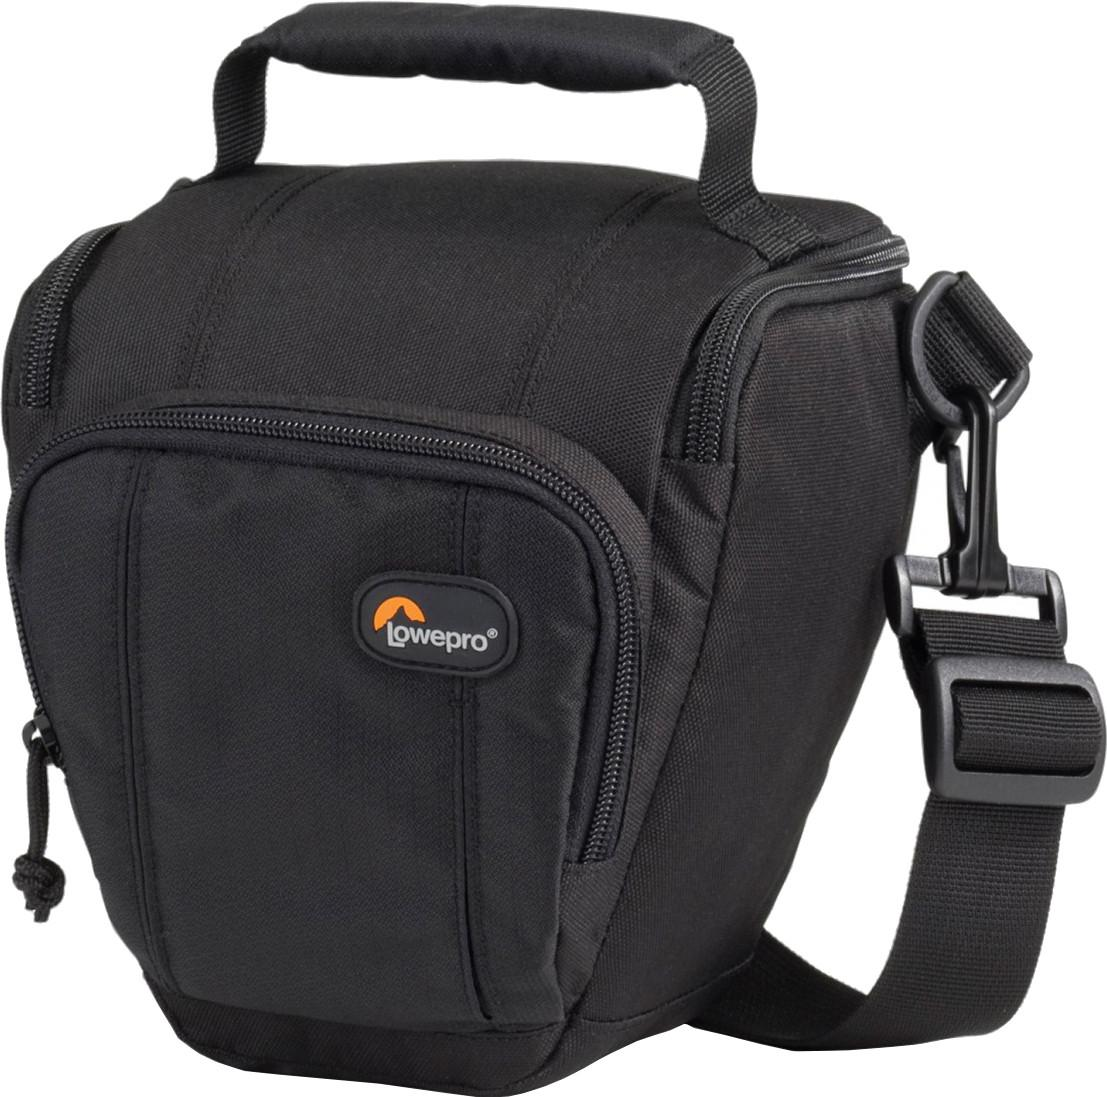 Lowepro Toploader Zoom 45 Aw Ii Camera Bag Black Price In India Format 140 Coupons And Specifications Payback